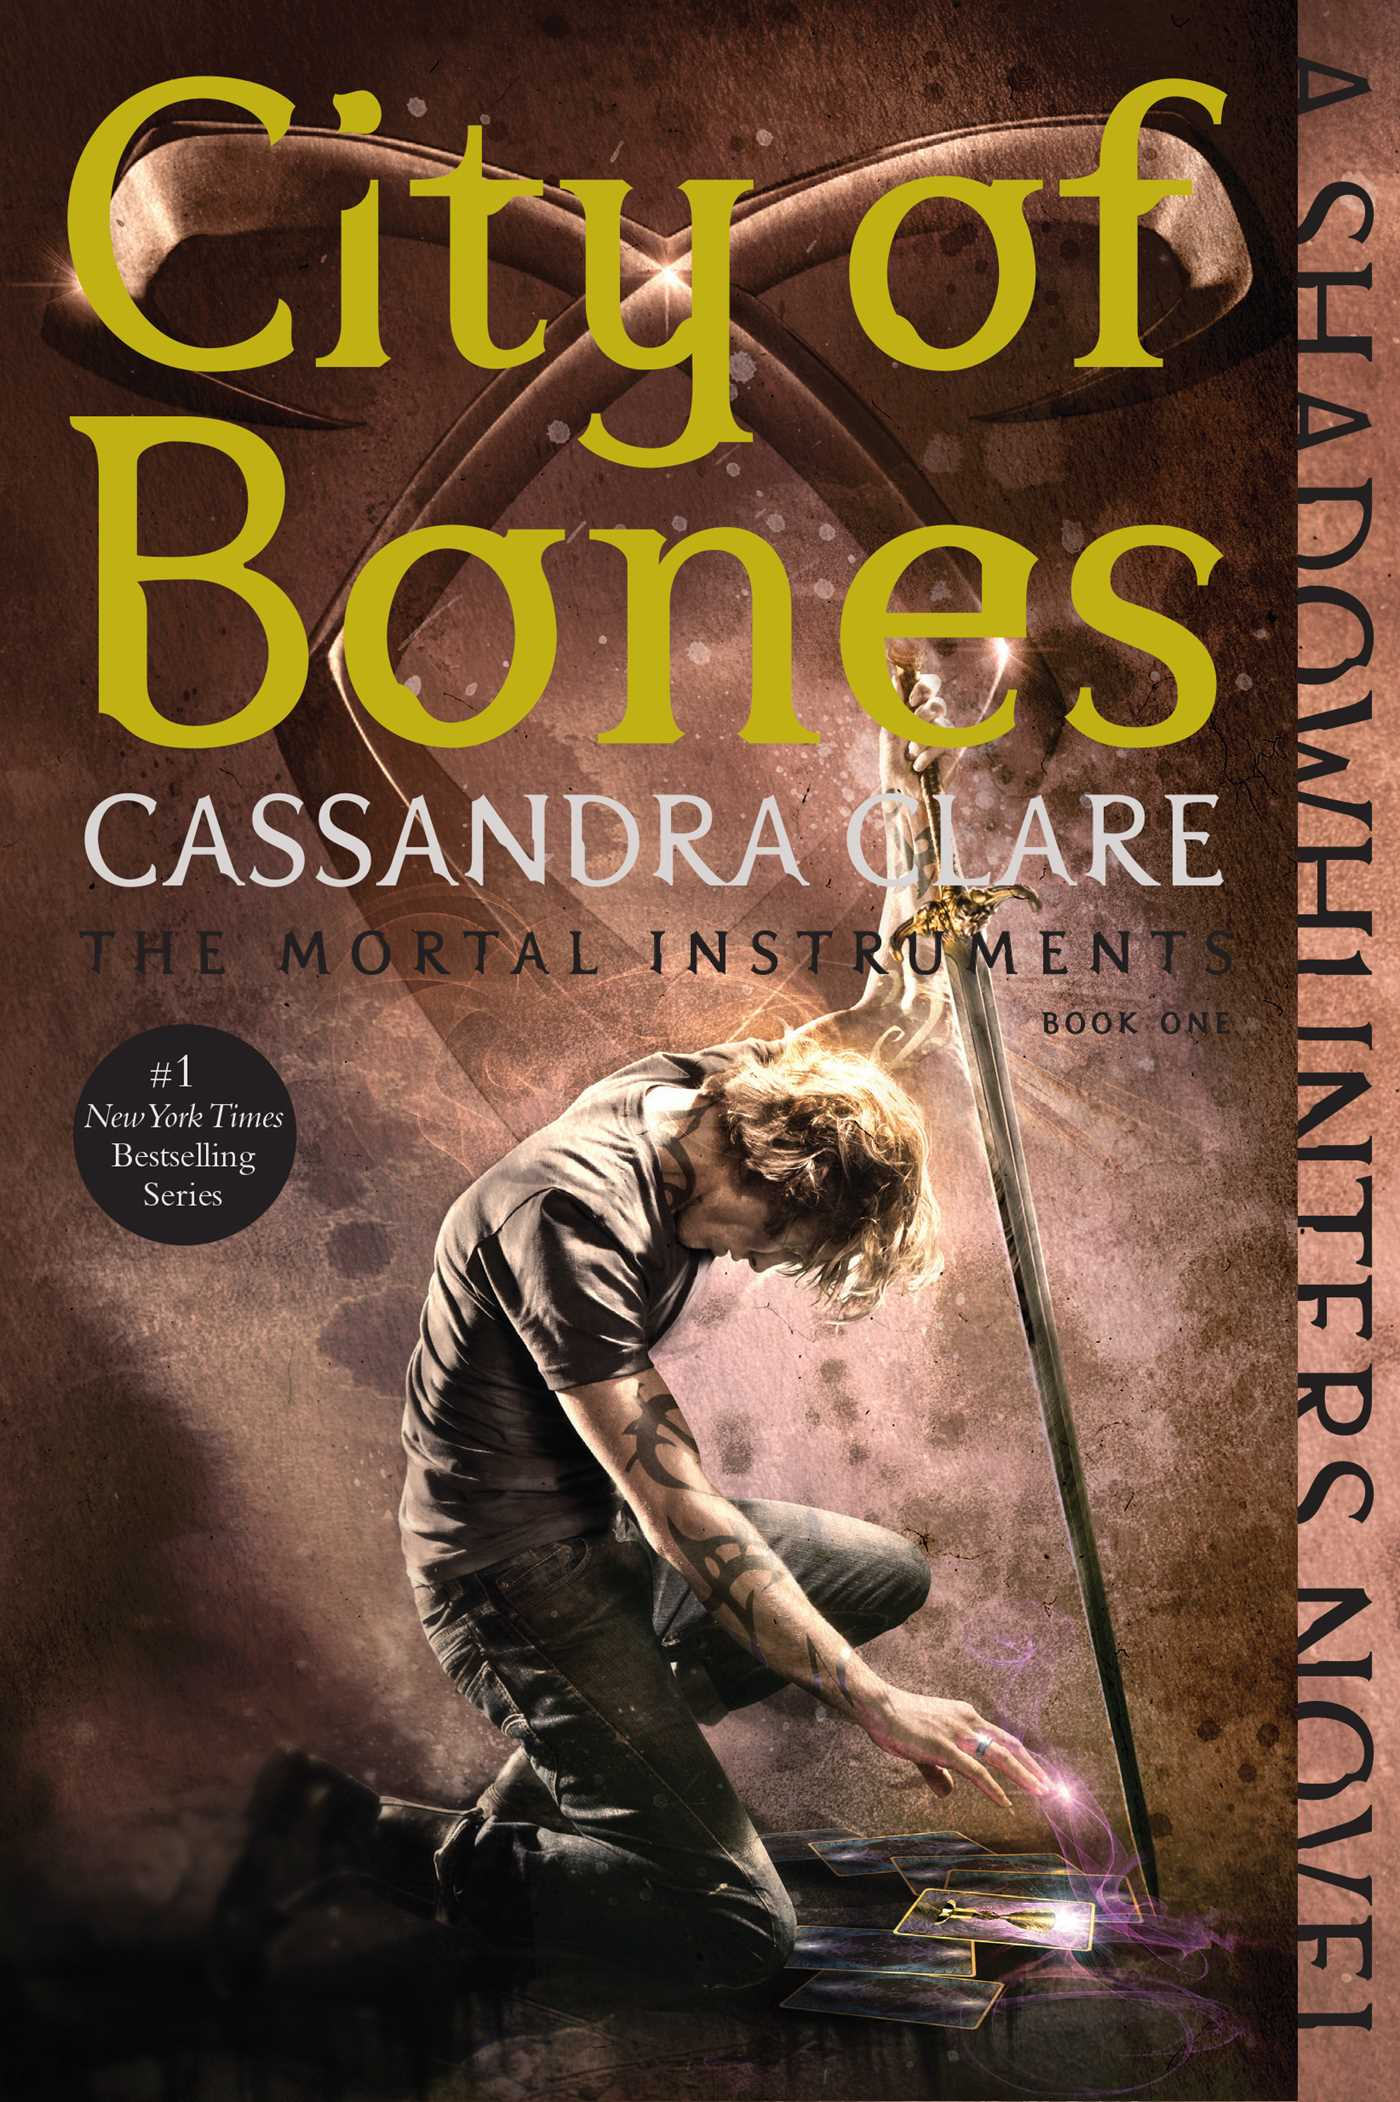 City-of-bones-9781416995753_hr